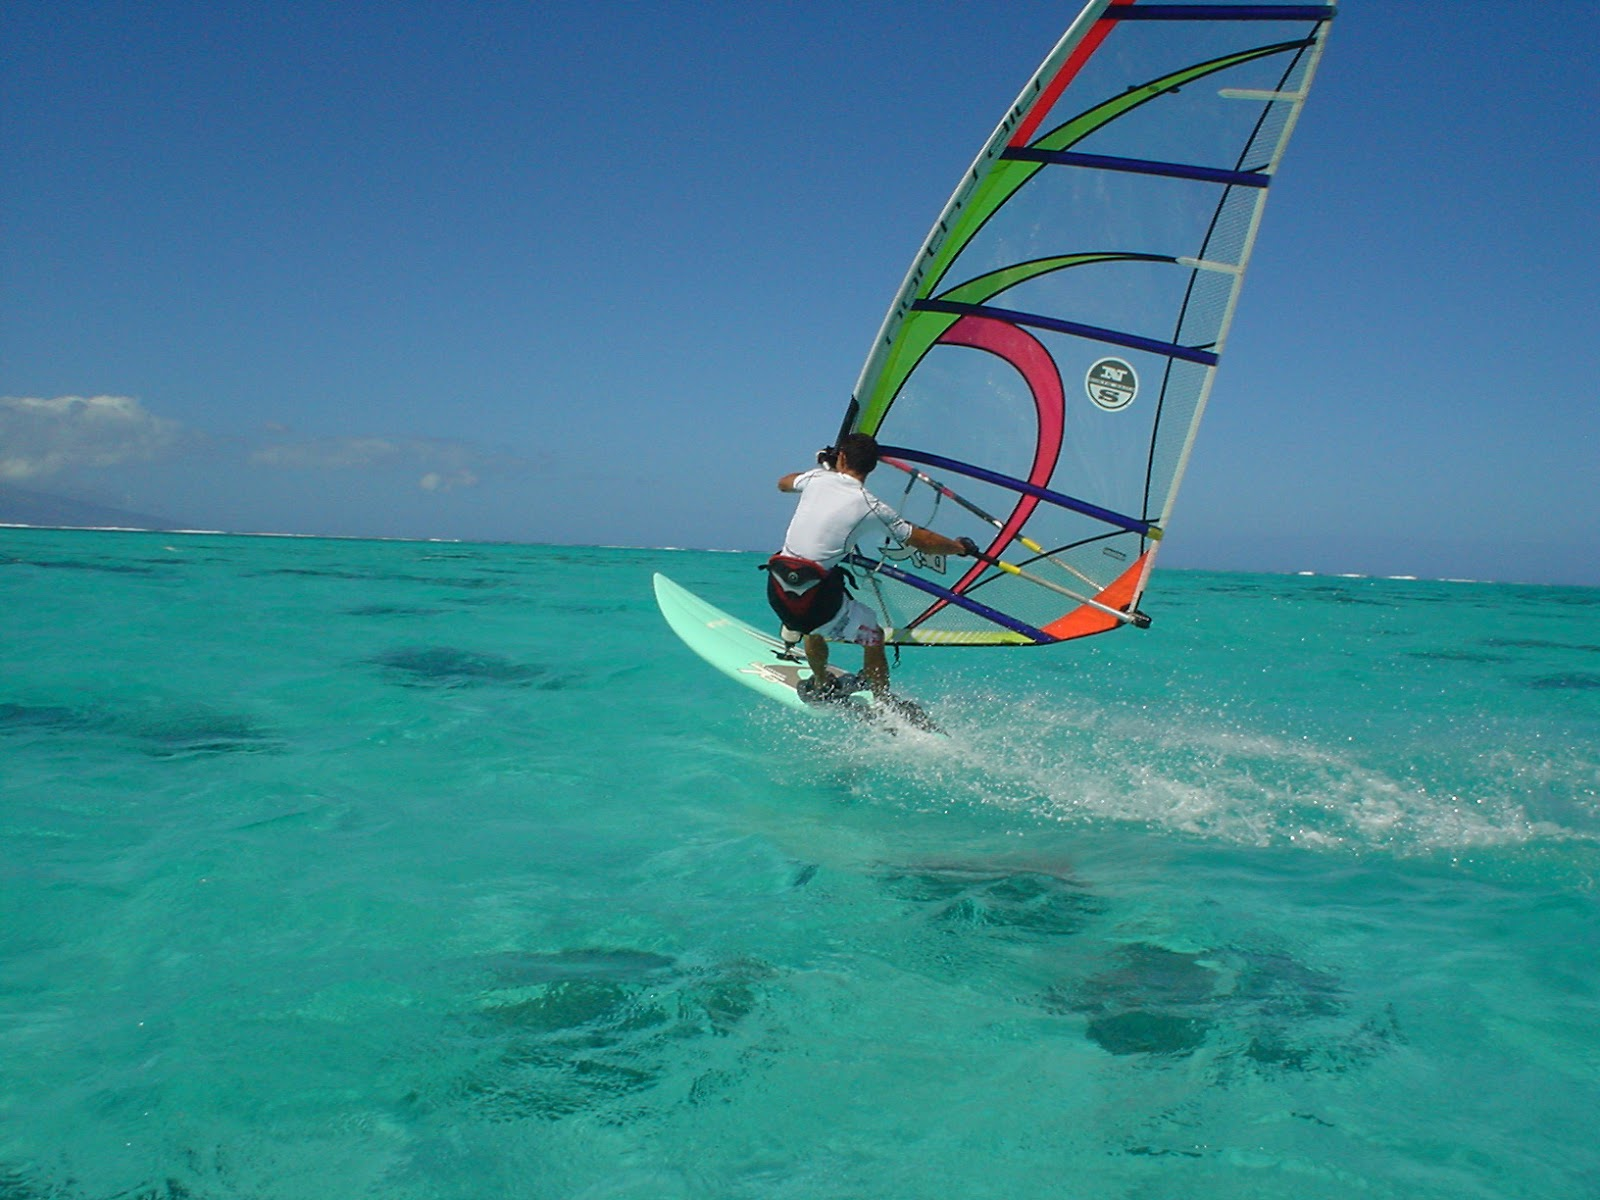 A windsurfer on calm water